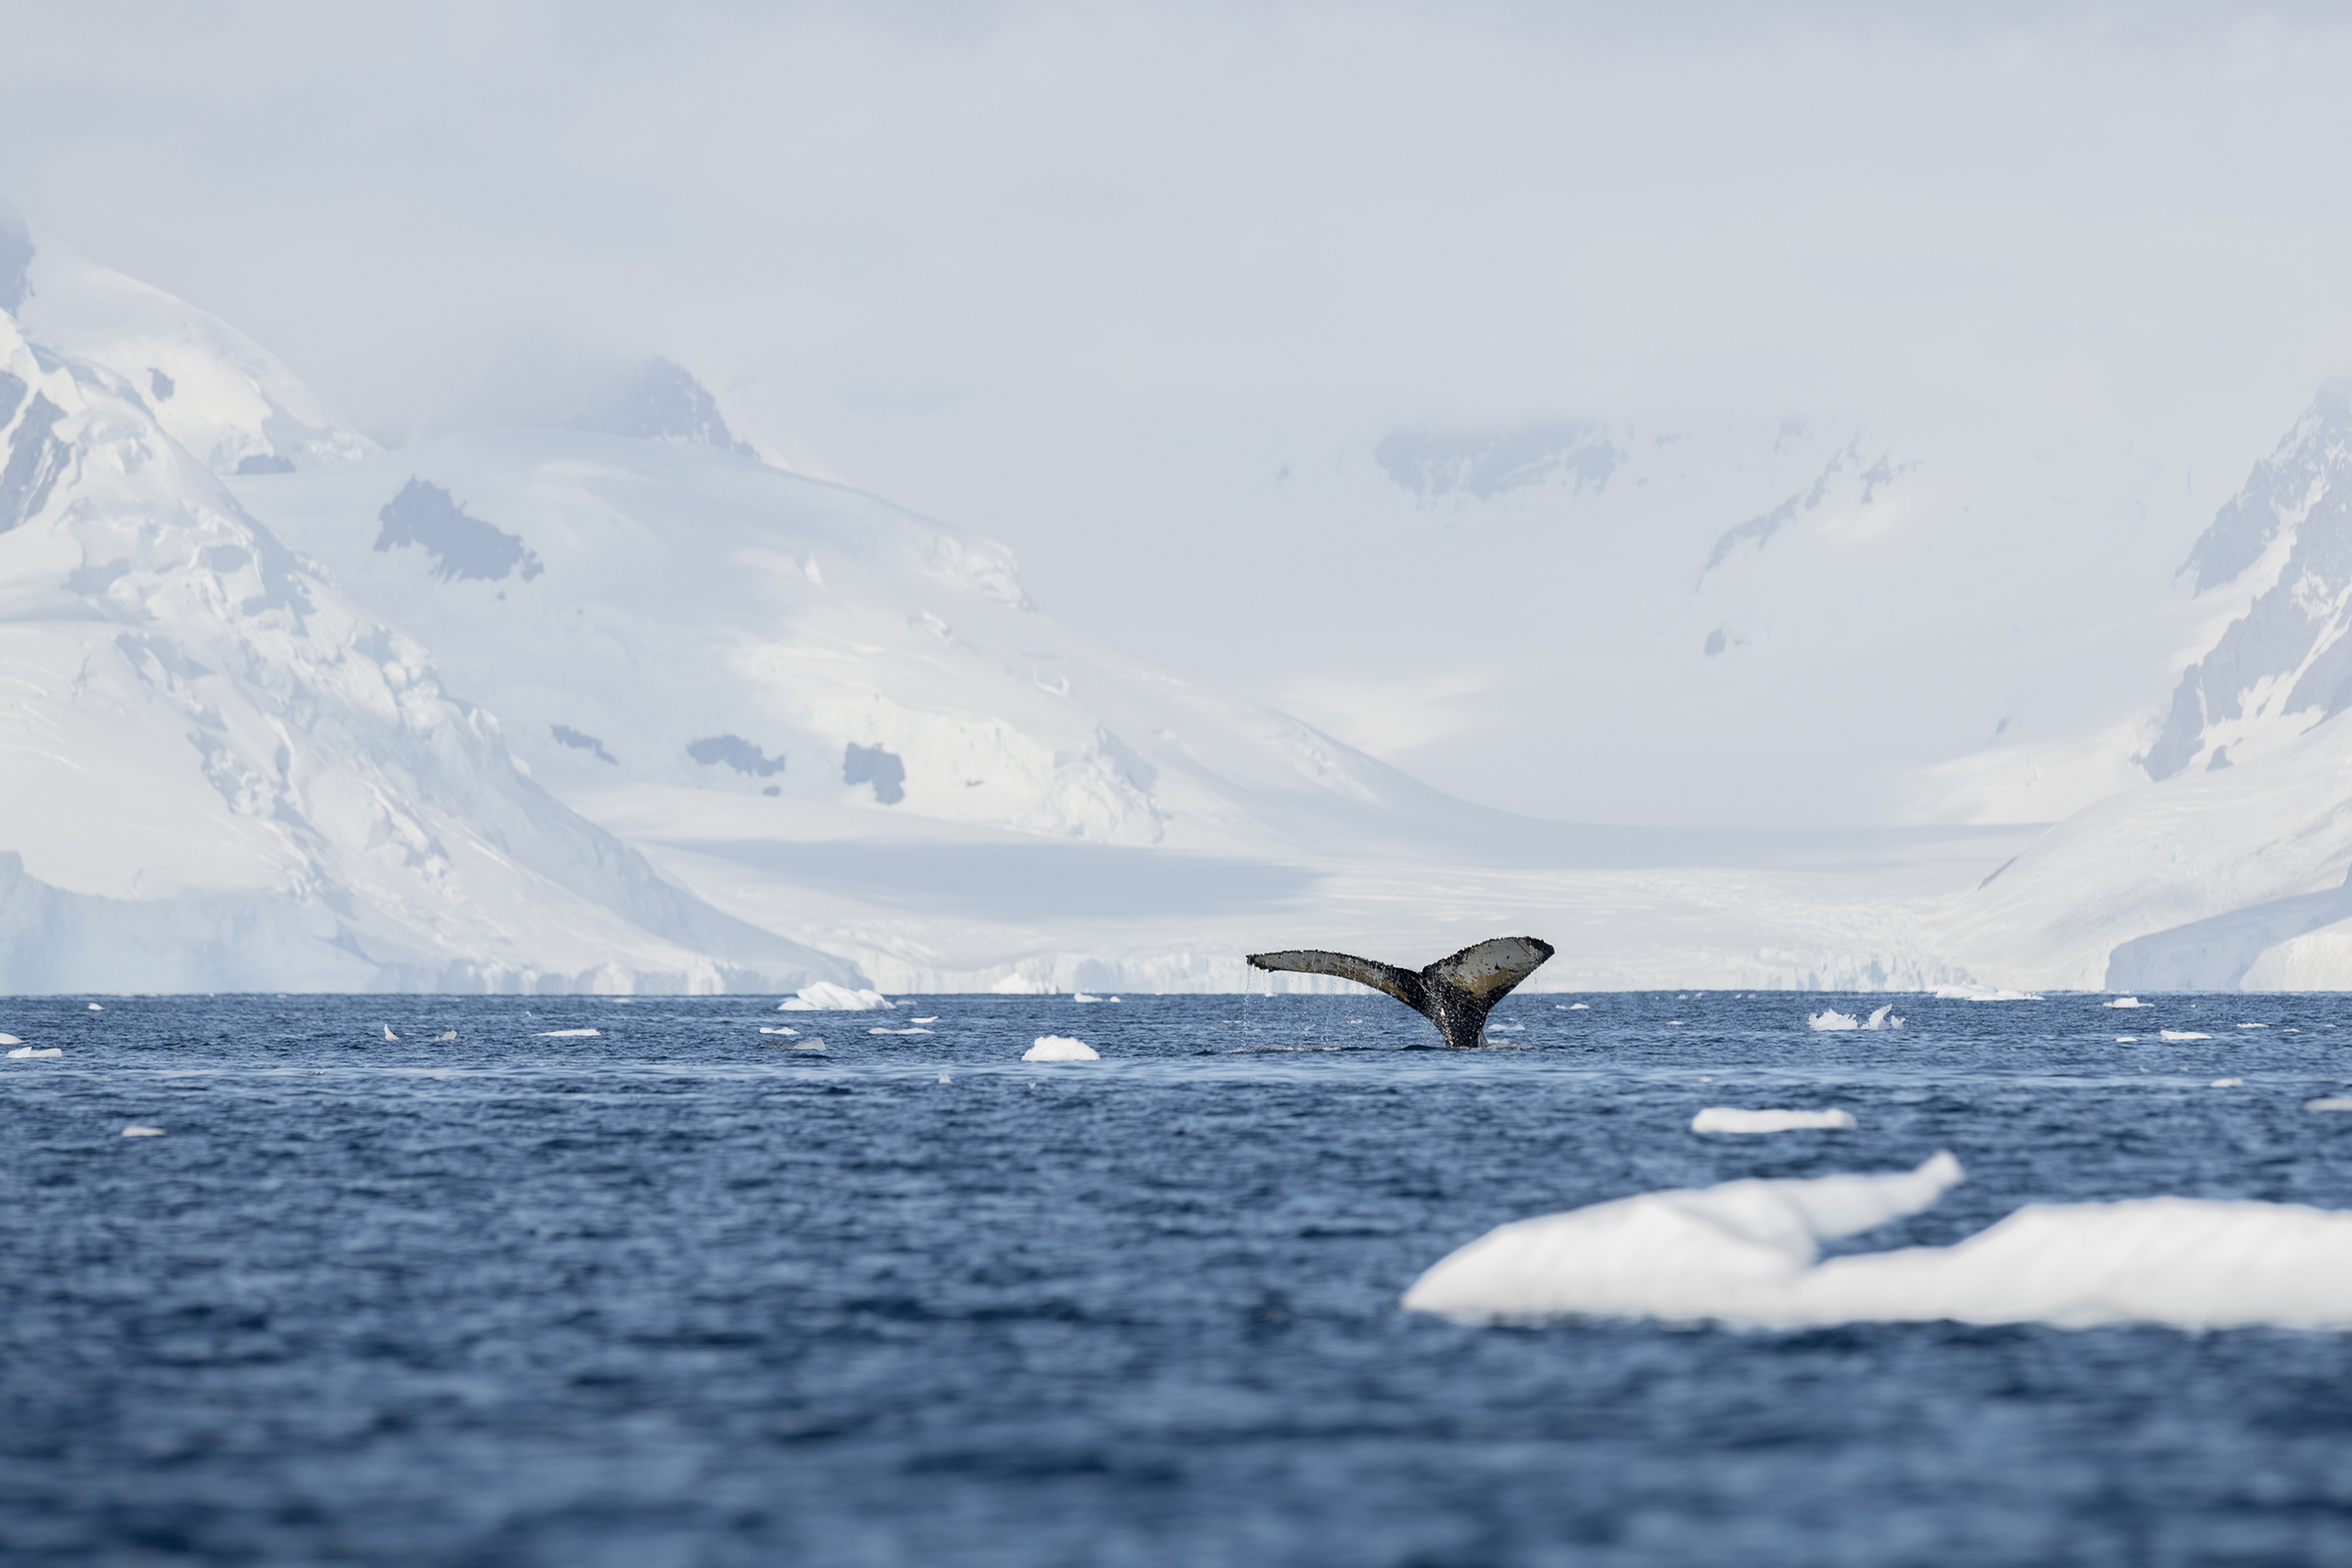 the fluke of a humpback whale at Anvers Island, Antarctica, on Feb. 3, 2020.